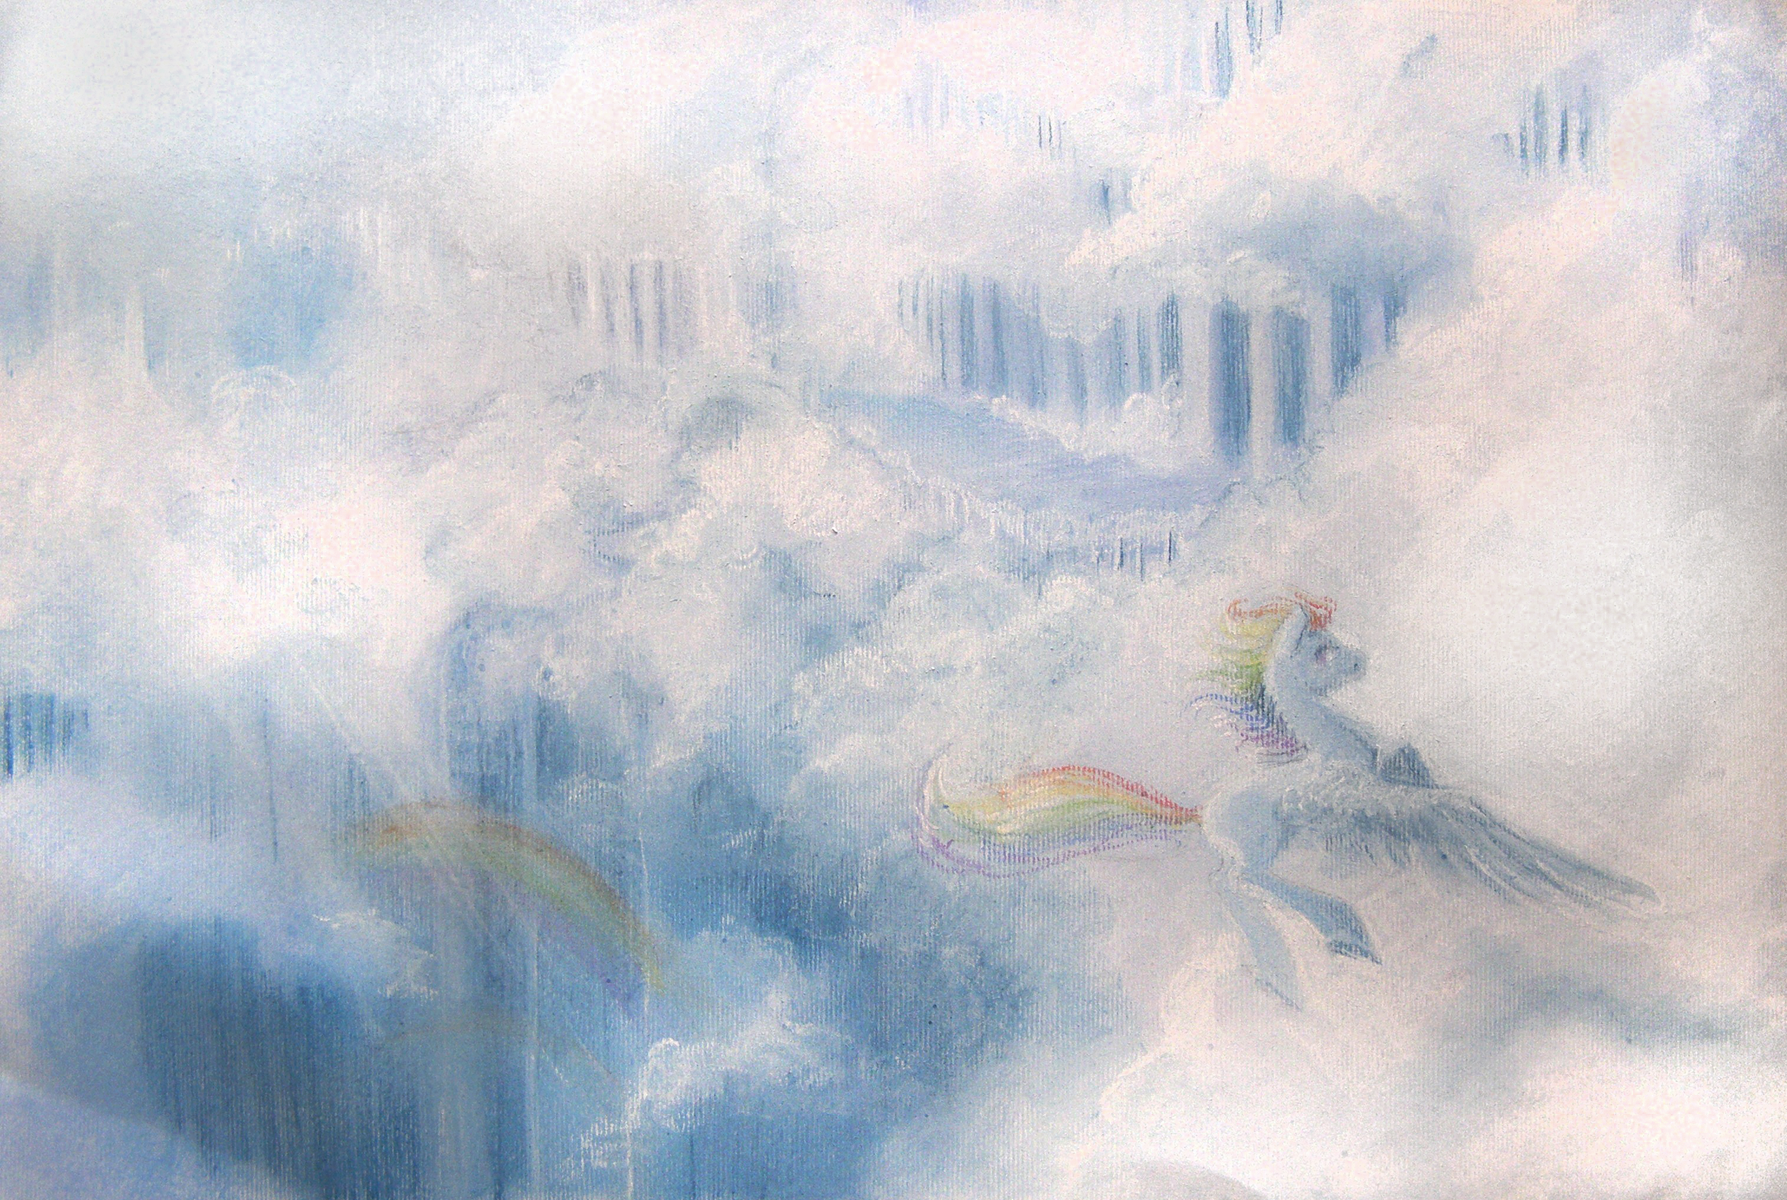 [Bild: dashie_in_cloudsdale_by_mao_ookaneko-d6e66jw.png]